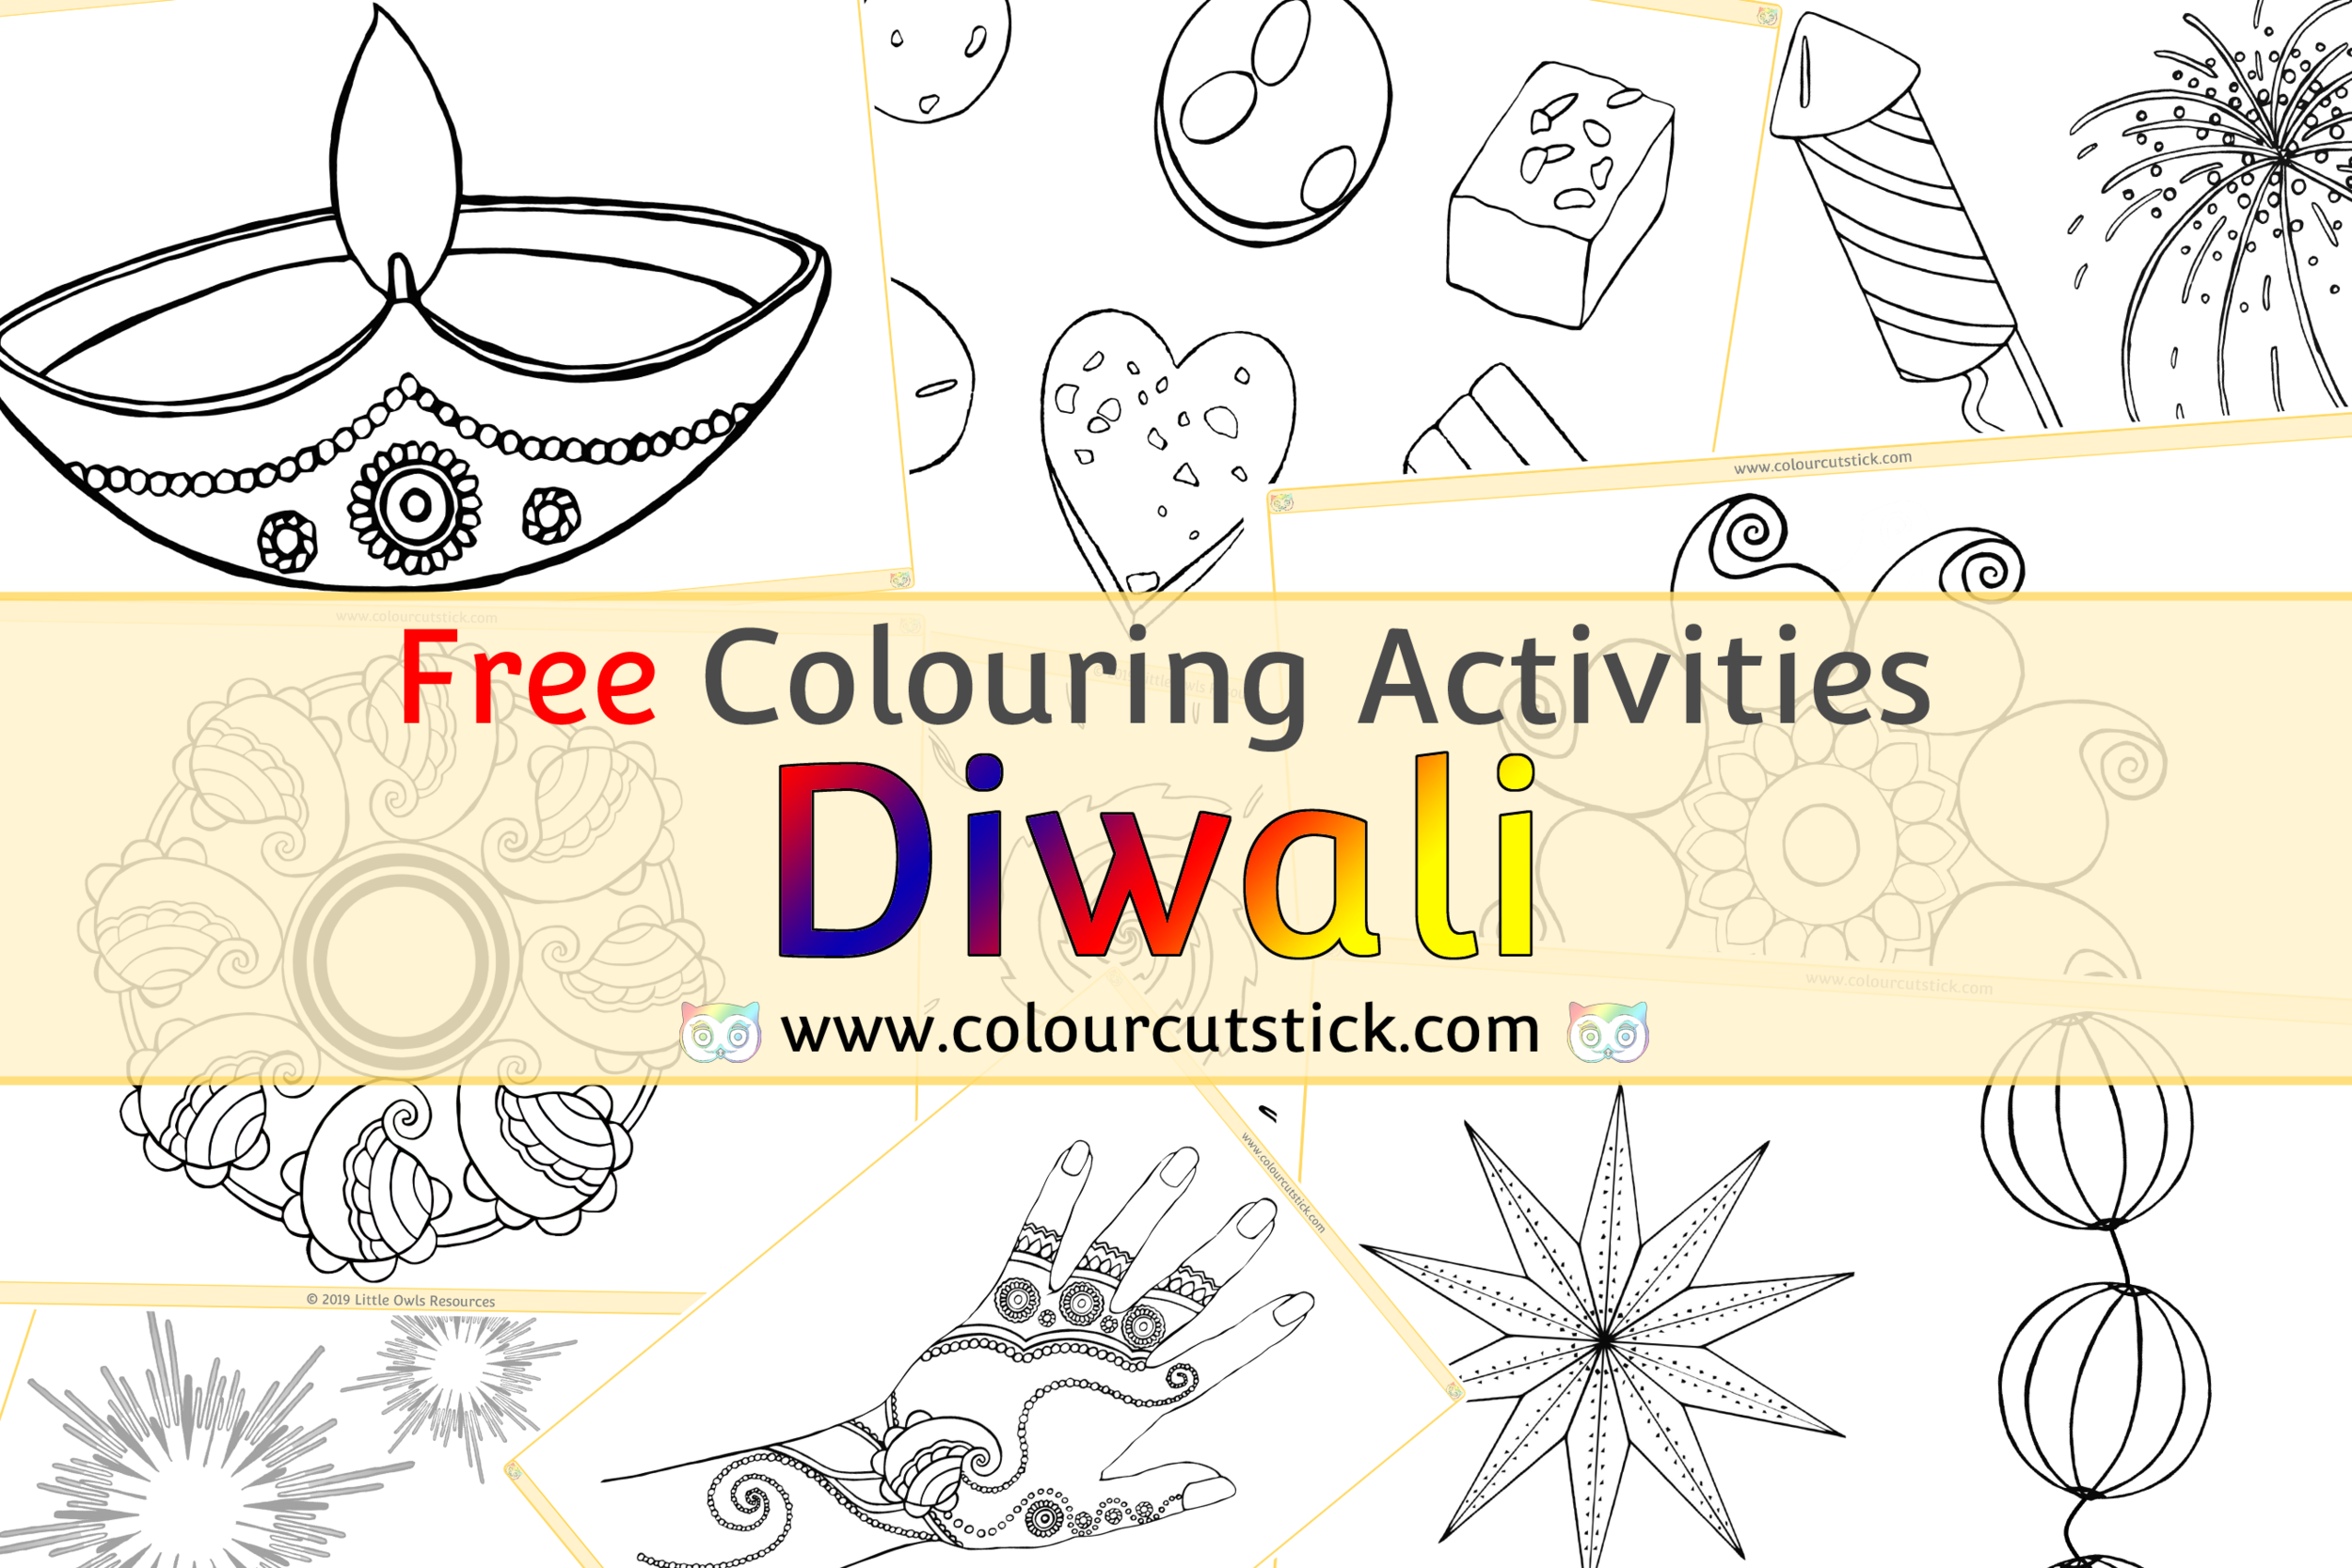 Free Diwali Colouring Coloring Pages For Children Kids Toddlers Preschoolers Early Years Colour Cut Stick Free Colouring Activities